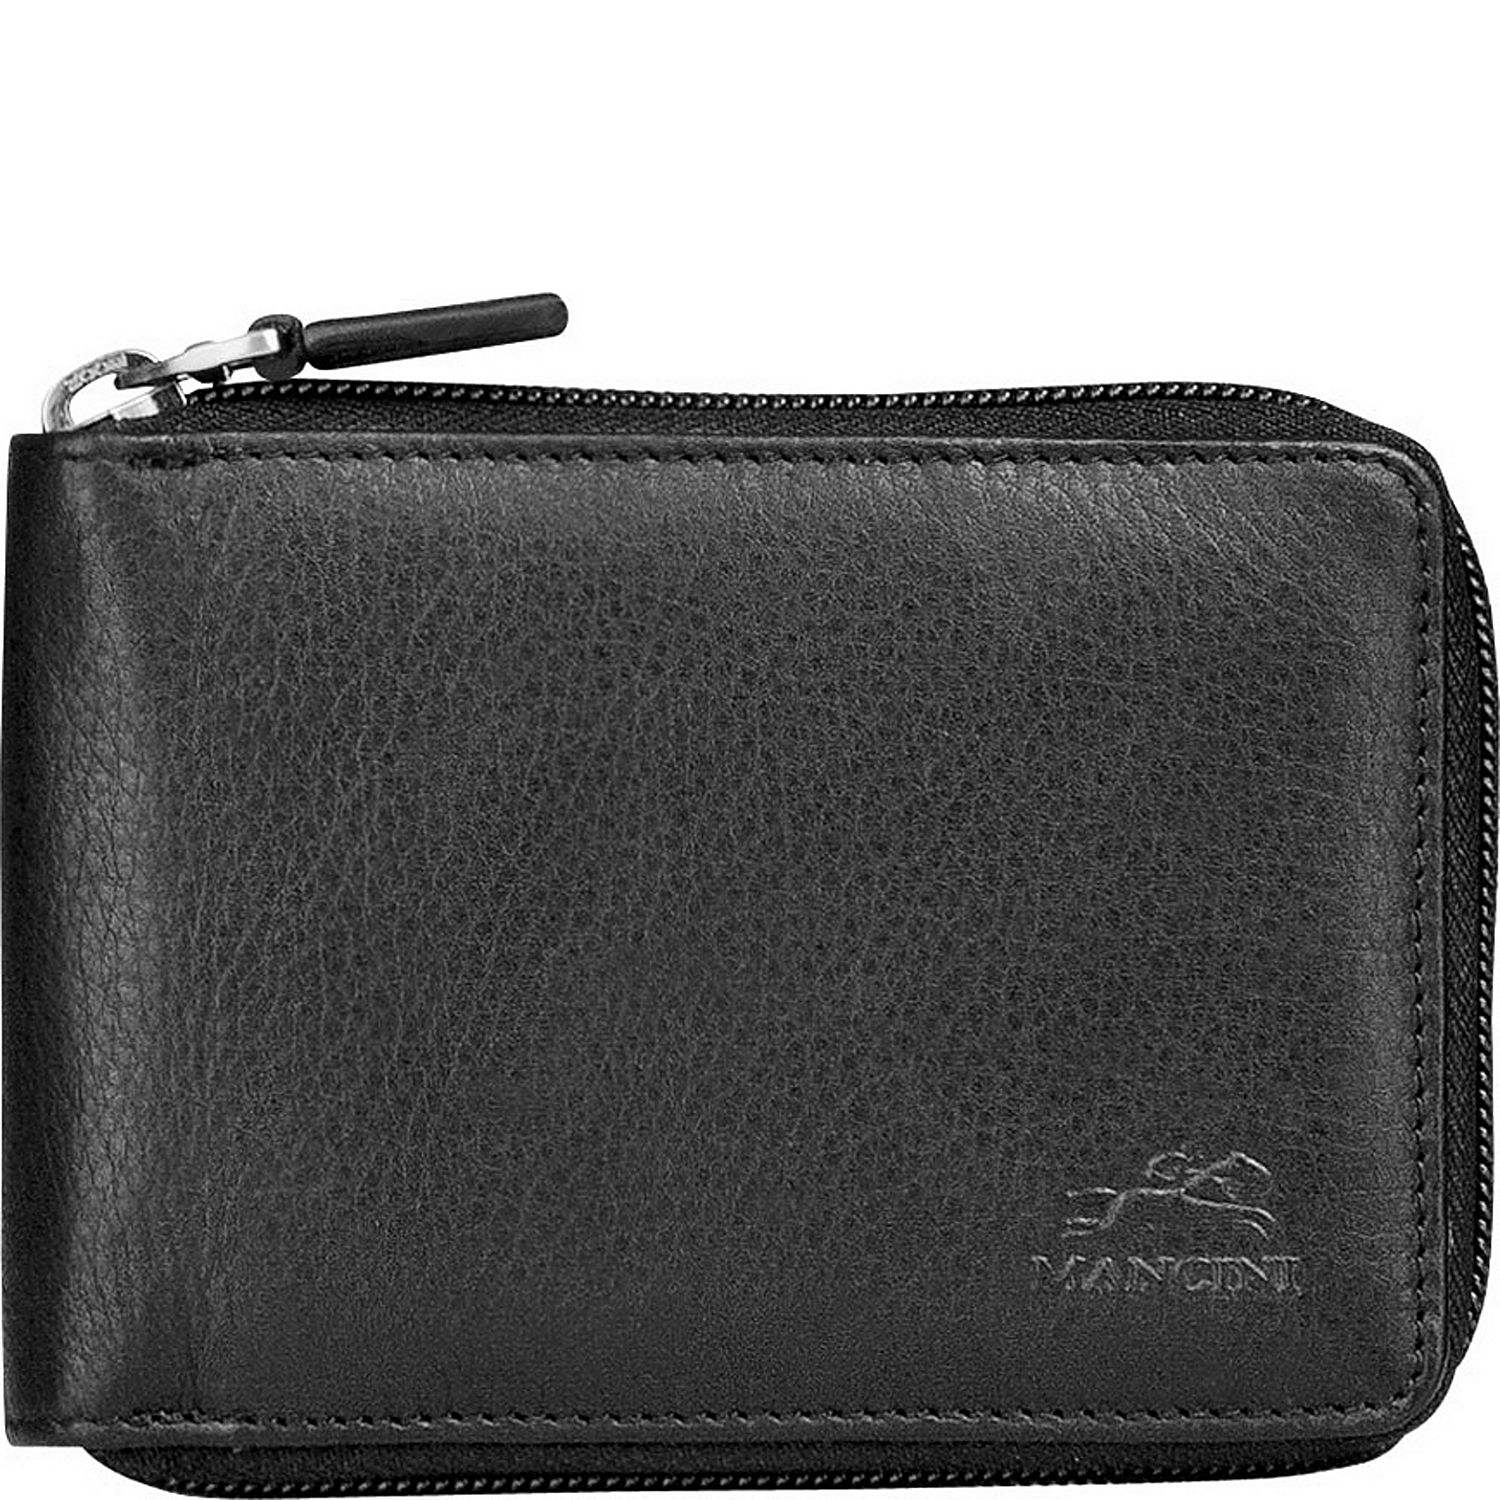 Mancini Leather Goods Men's Zippered Wallet with Removable ...